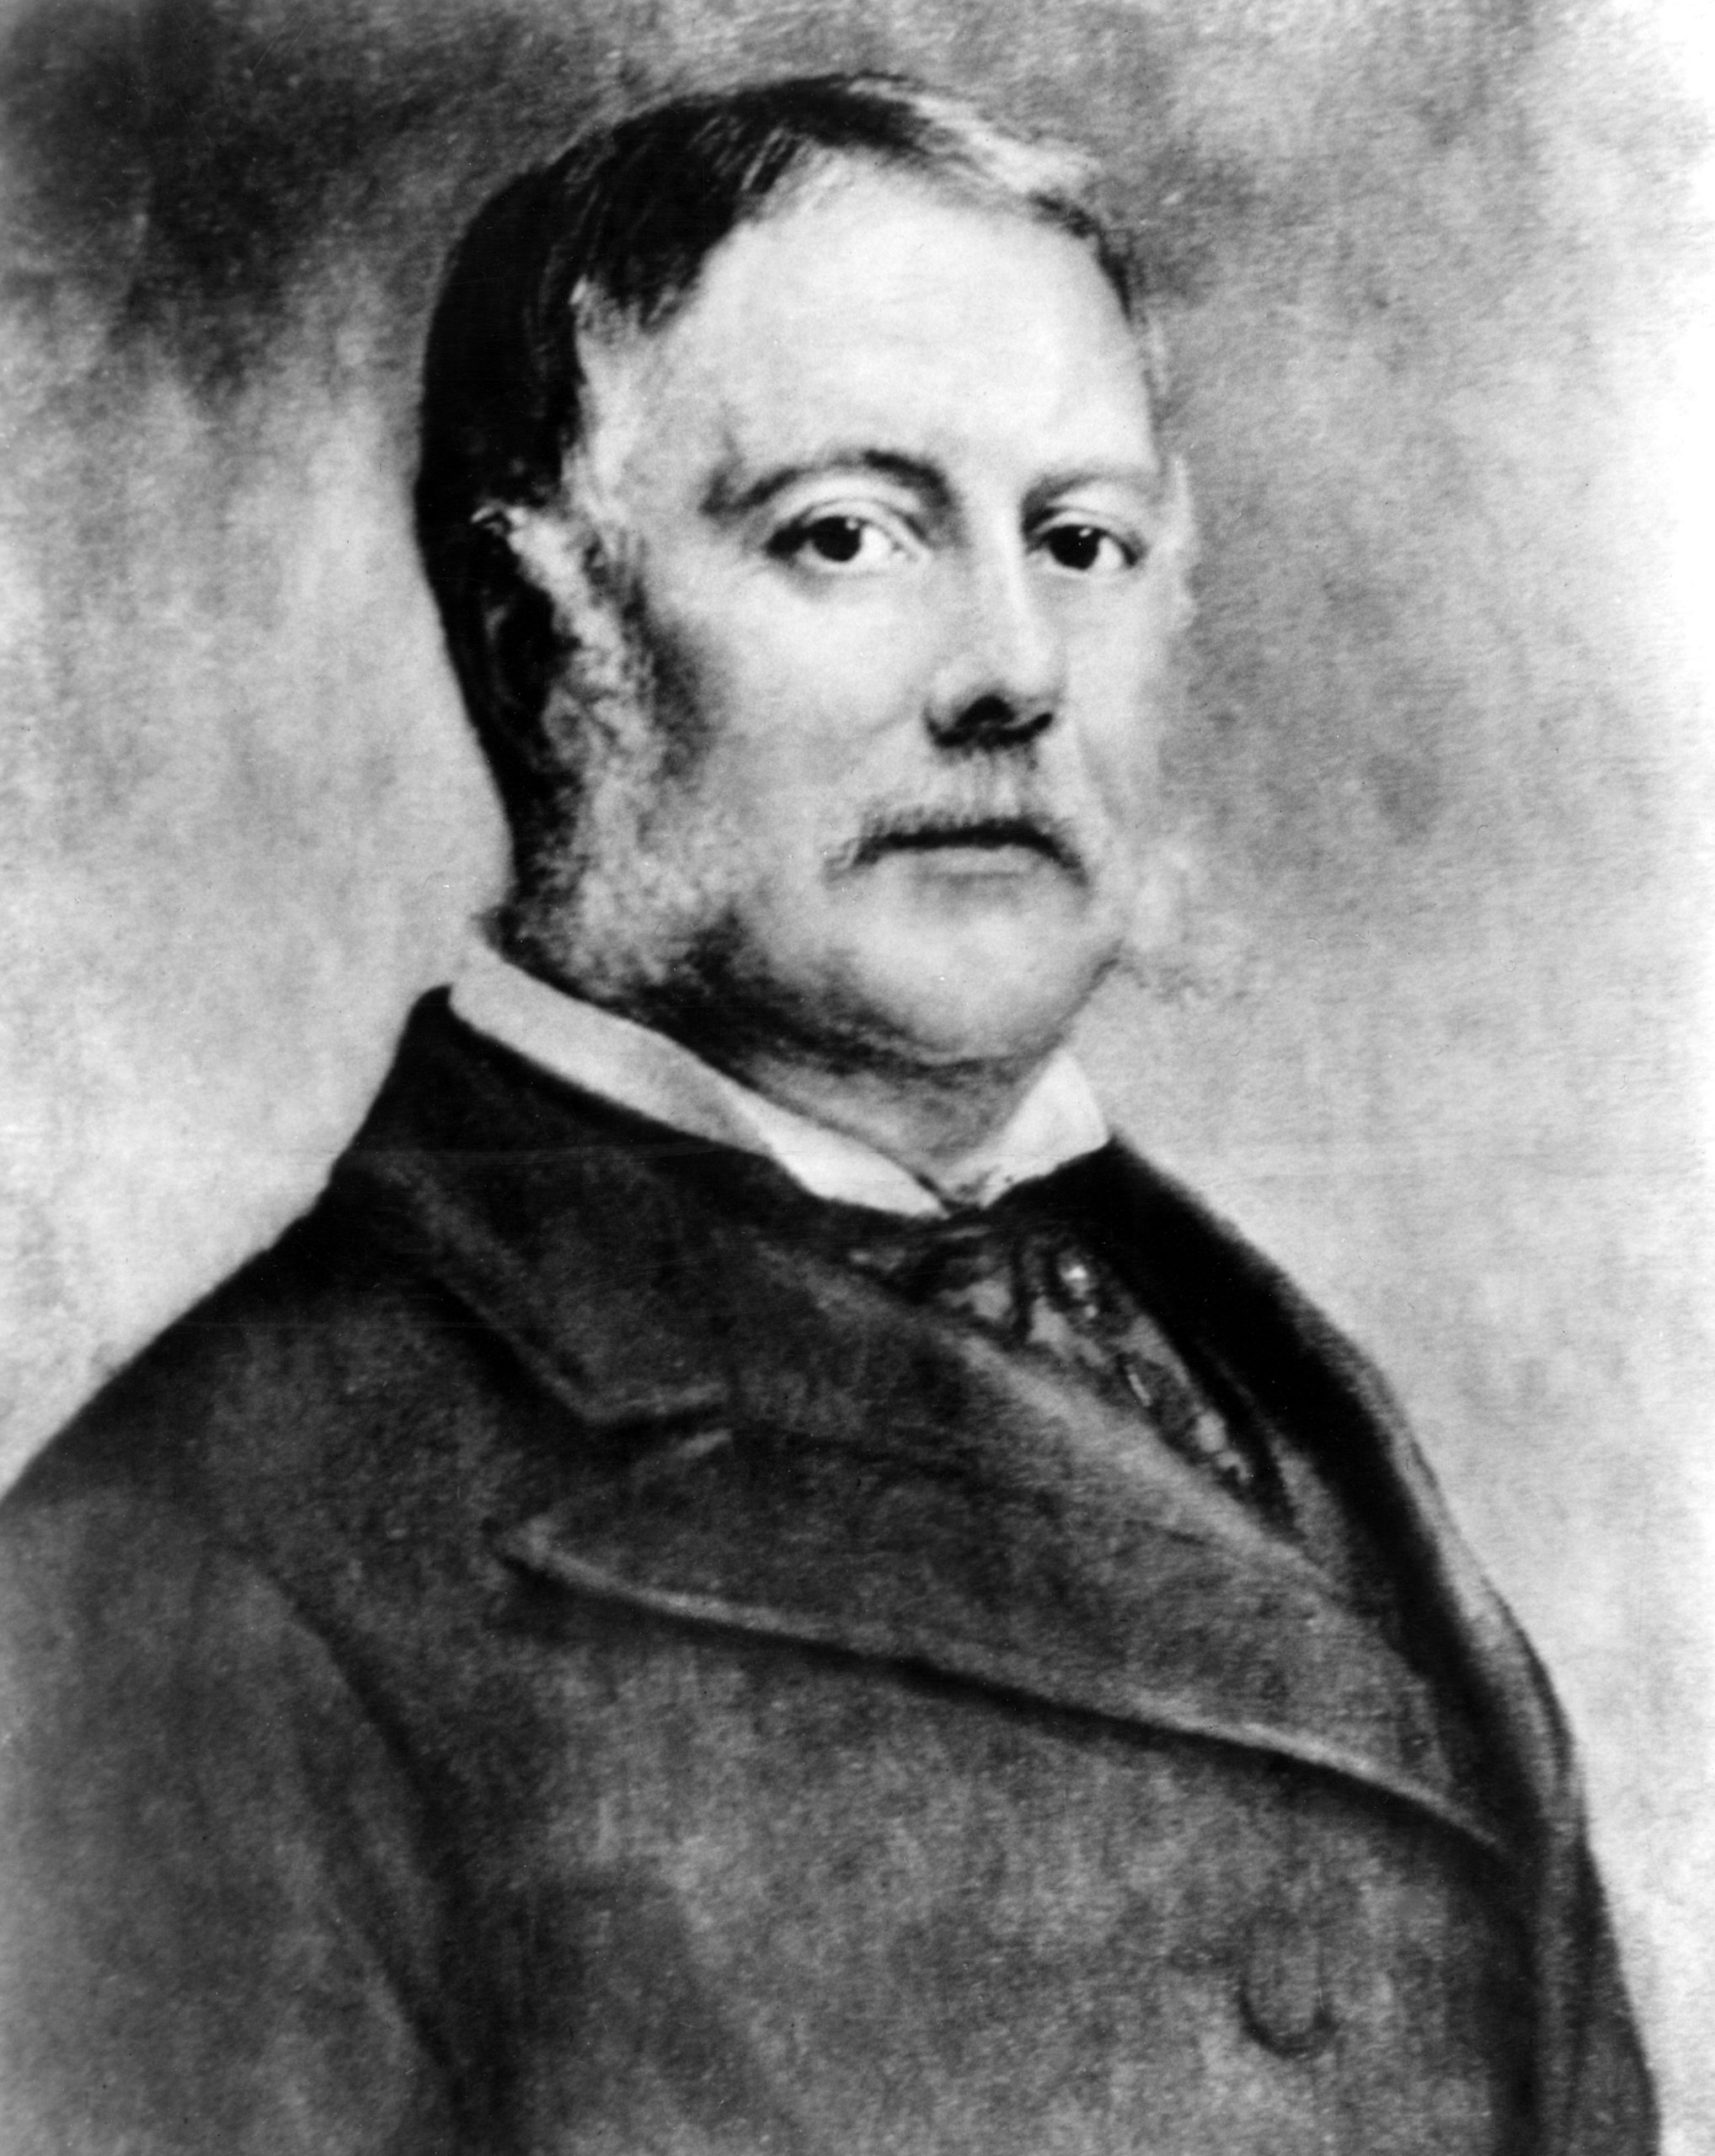 He, known as the most forgotten President, was an American attorney and politician who served as the 21st president of the United States from 1881 to 1885. Previously the 20th vice president, he succeeded to the presidency upon the death of President James A. Garfield in 1881, two months after Garfield was shot by an assassin.